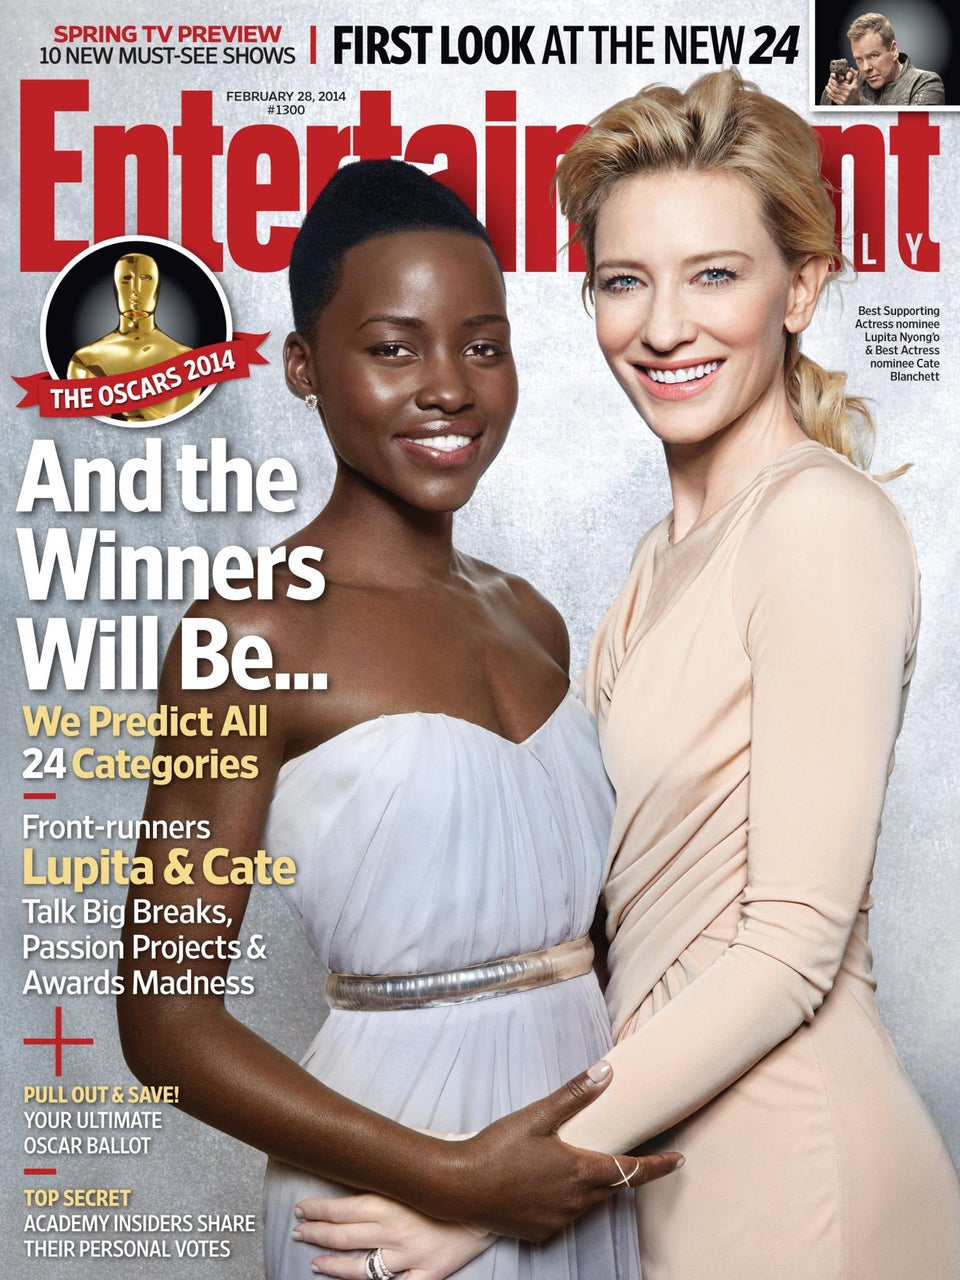 Lupita Nyong'o: 'I'm Doing For Little Girls What Oprah and Whoopi Did For Me'